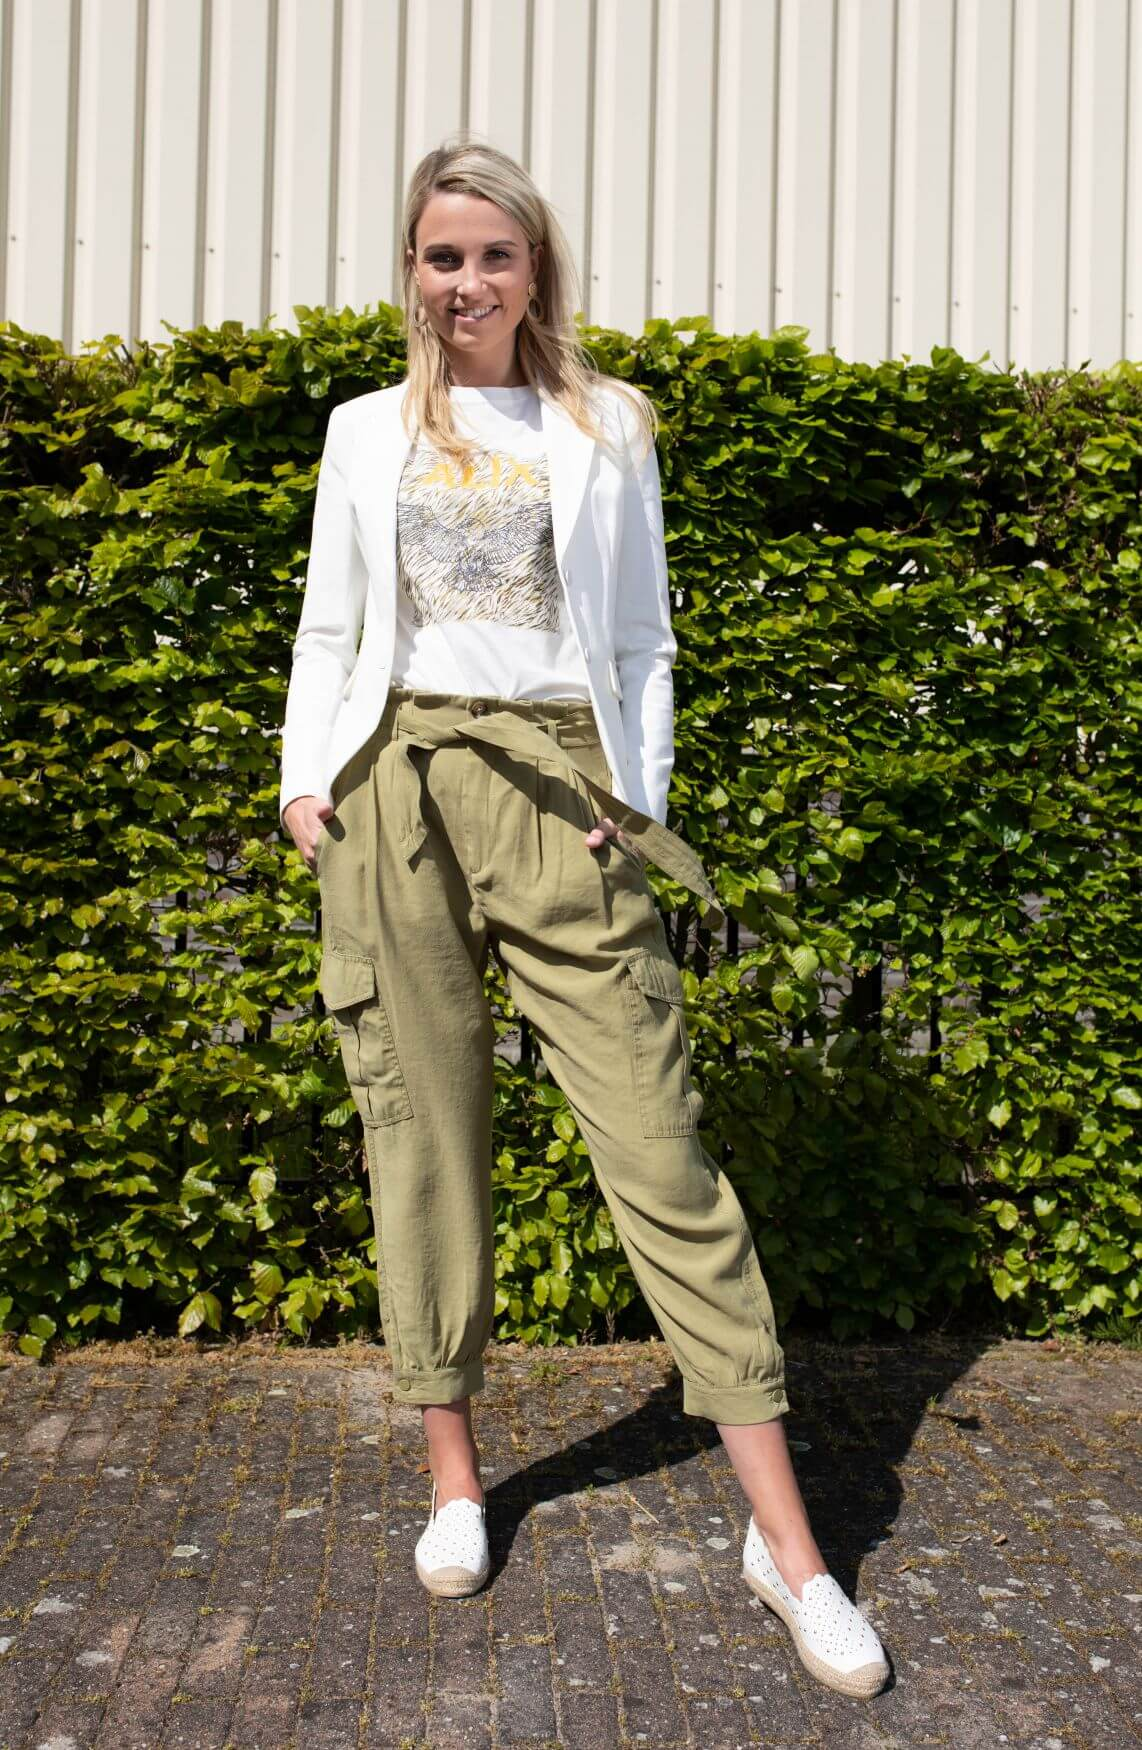 Dames Streetlook - 131